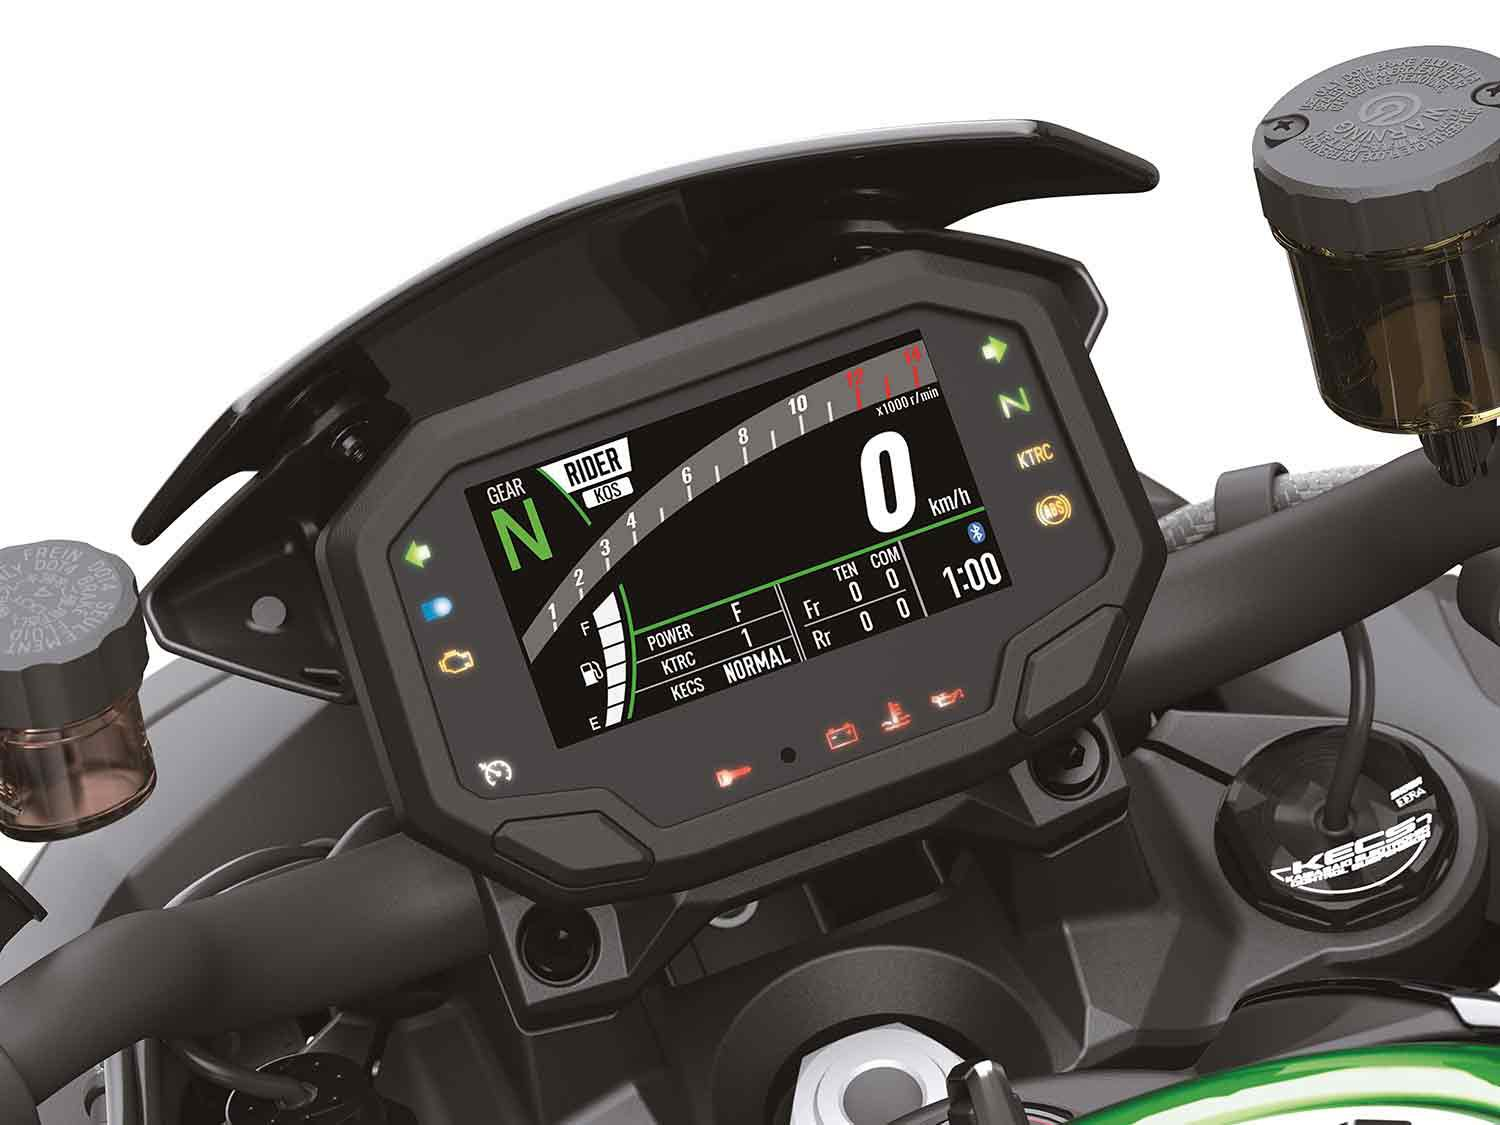 The Z H2 SE's 4.3-inch TFT dash has all the information you need, and can be adjusted to your liking.